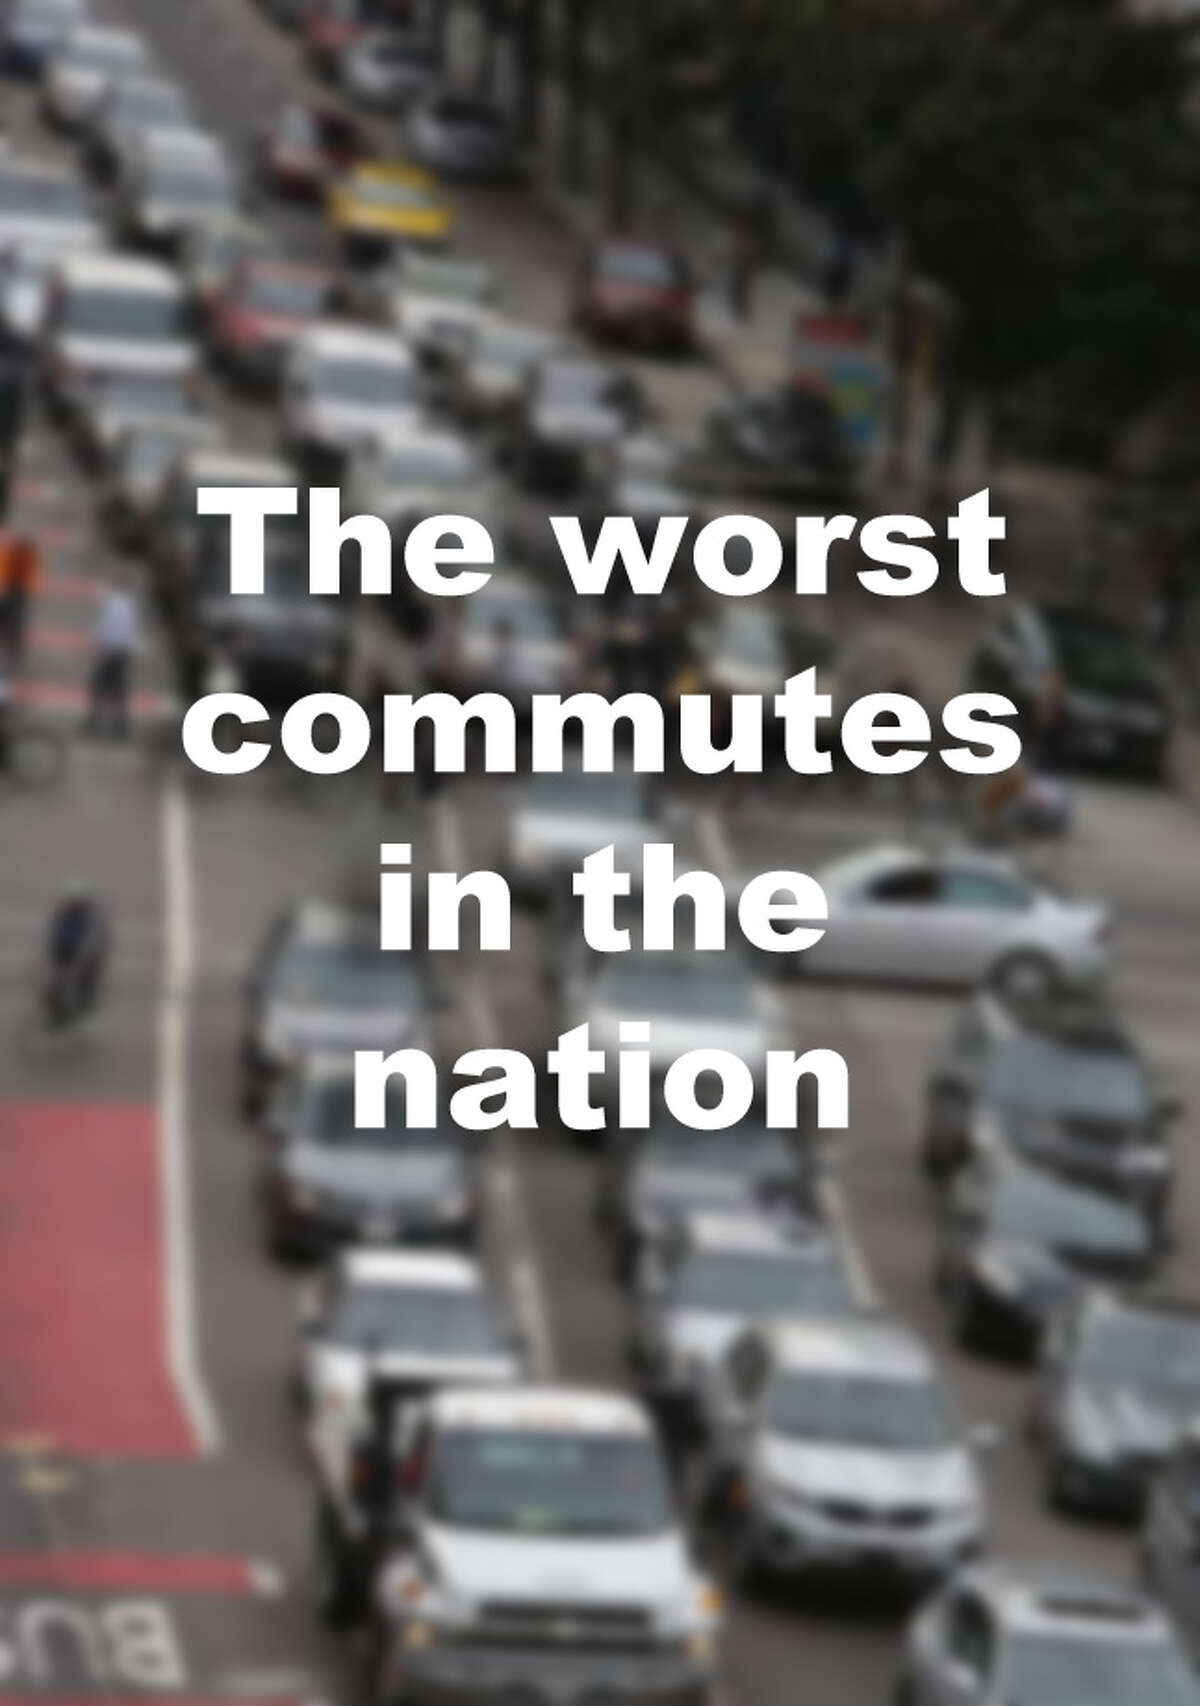 The worst commutes in the nation